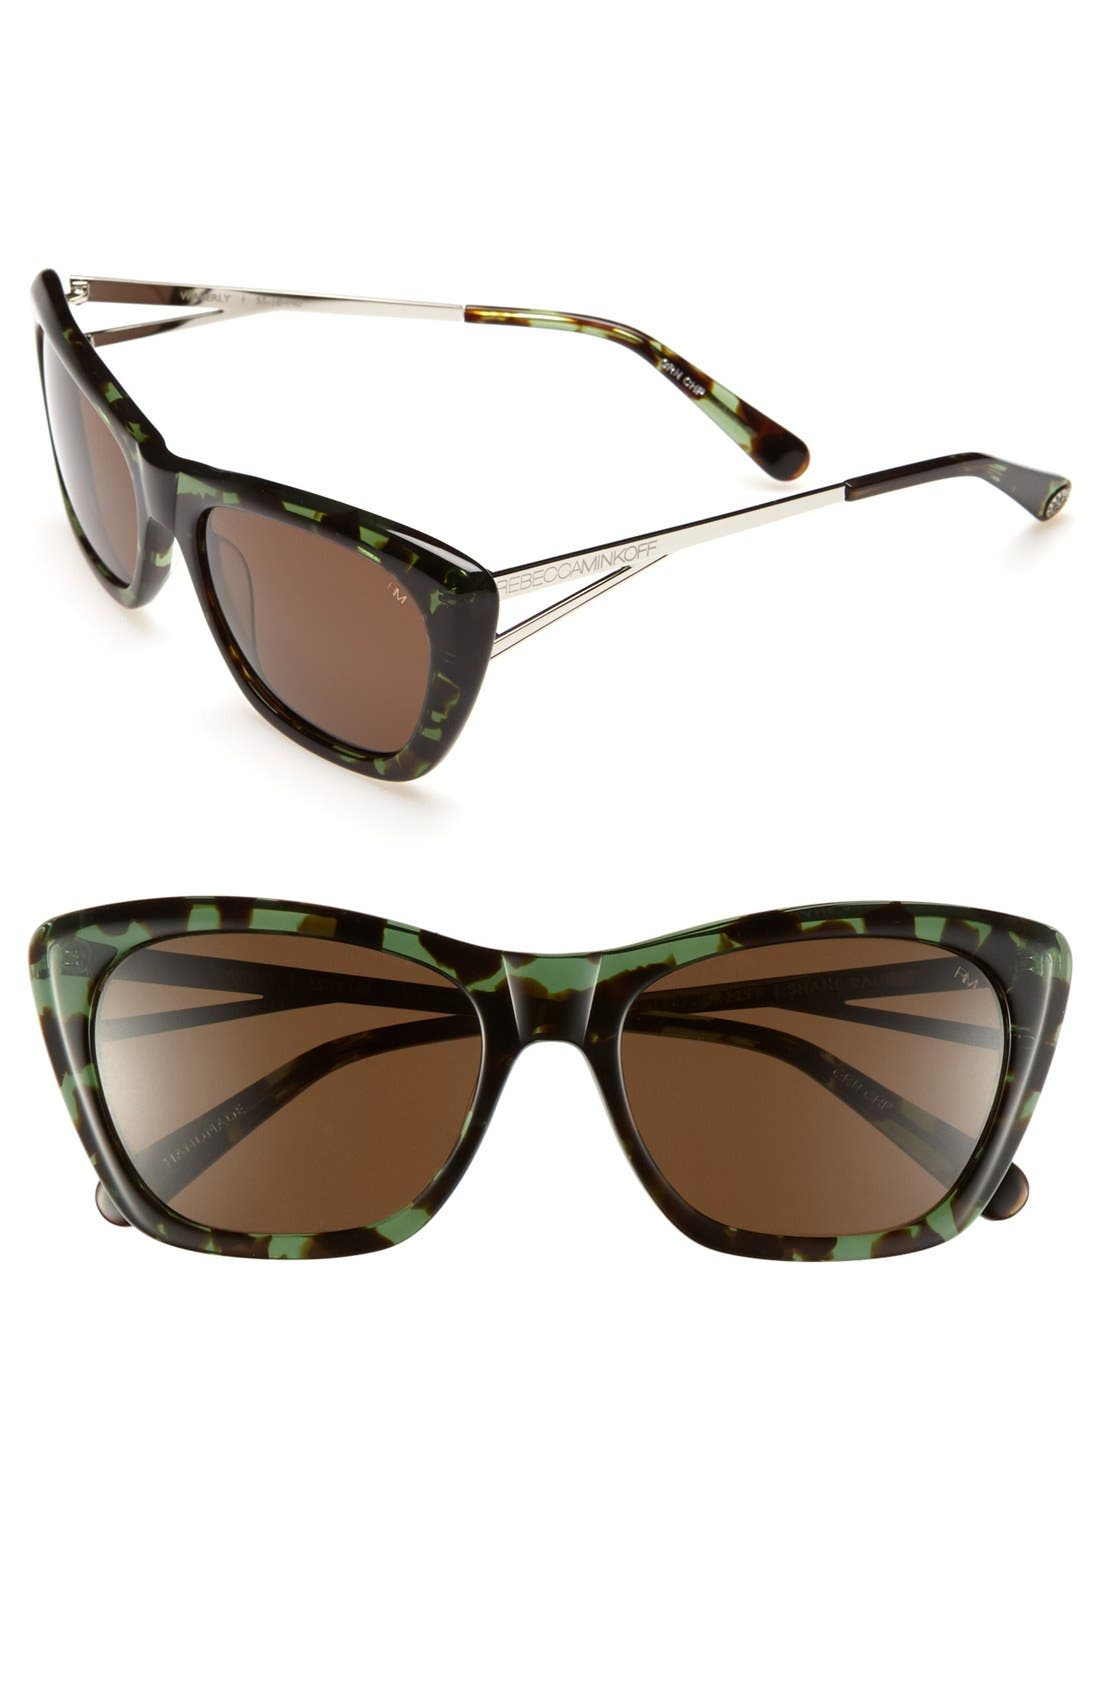 Alternate Image 1 Selected - Rebecca Minkoff 'Waverly' 55mm Sunglasses